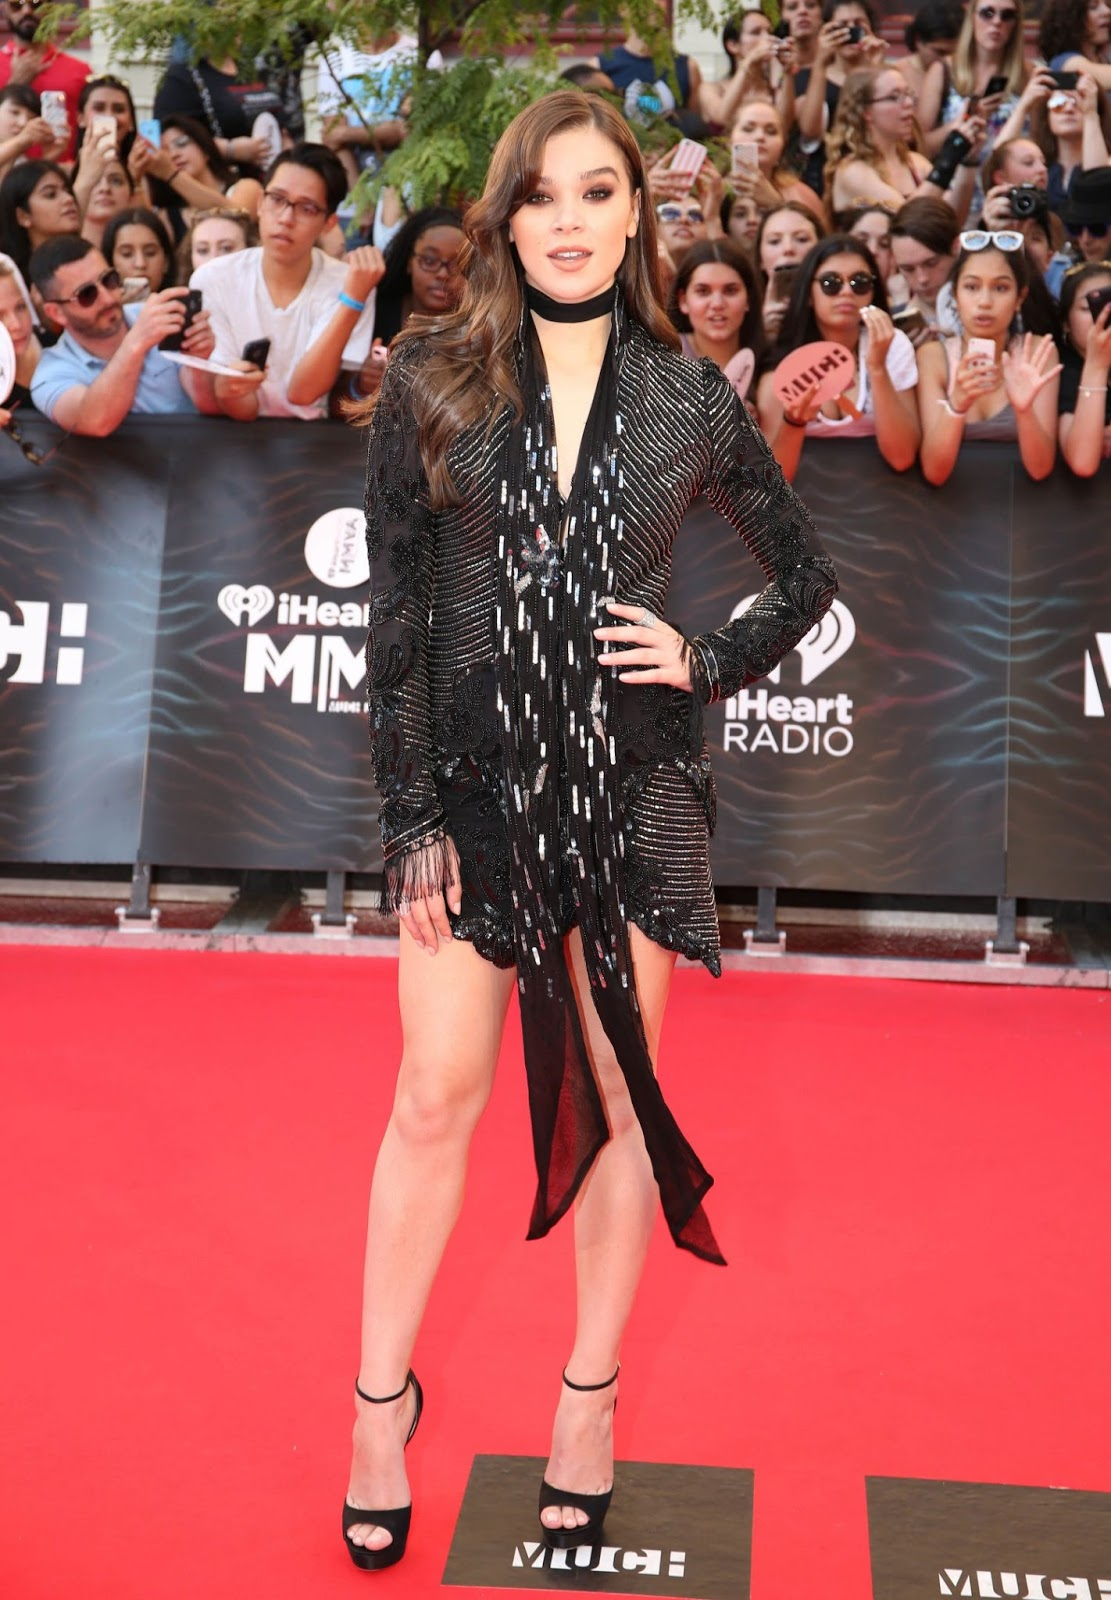 Hailee Steinfeld at MuchMusic Video Awards 2016 in Toronto